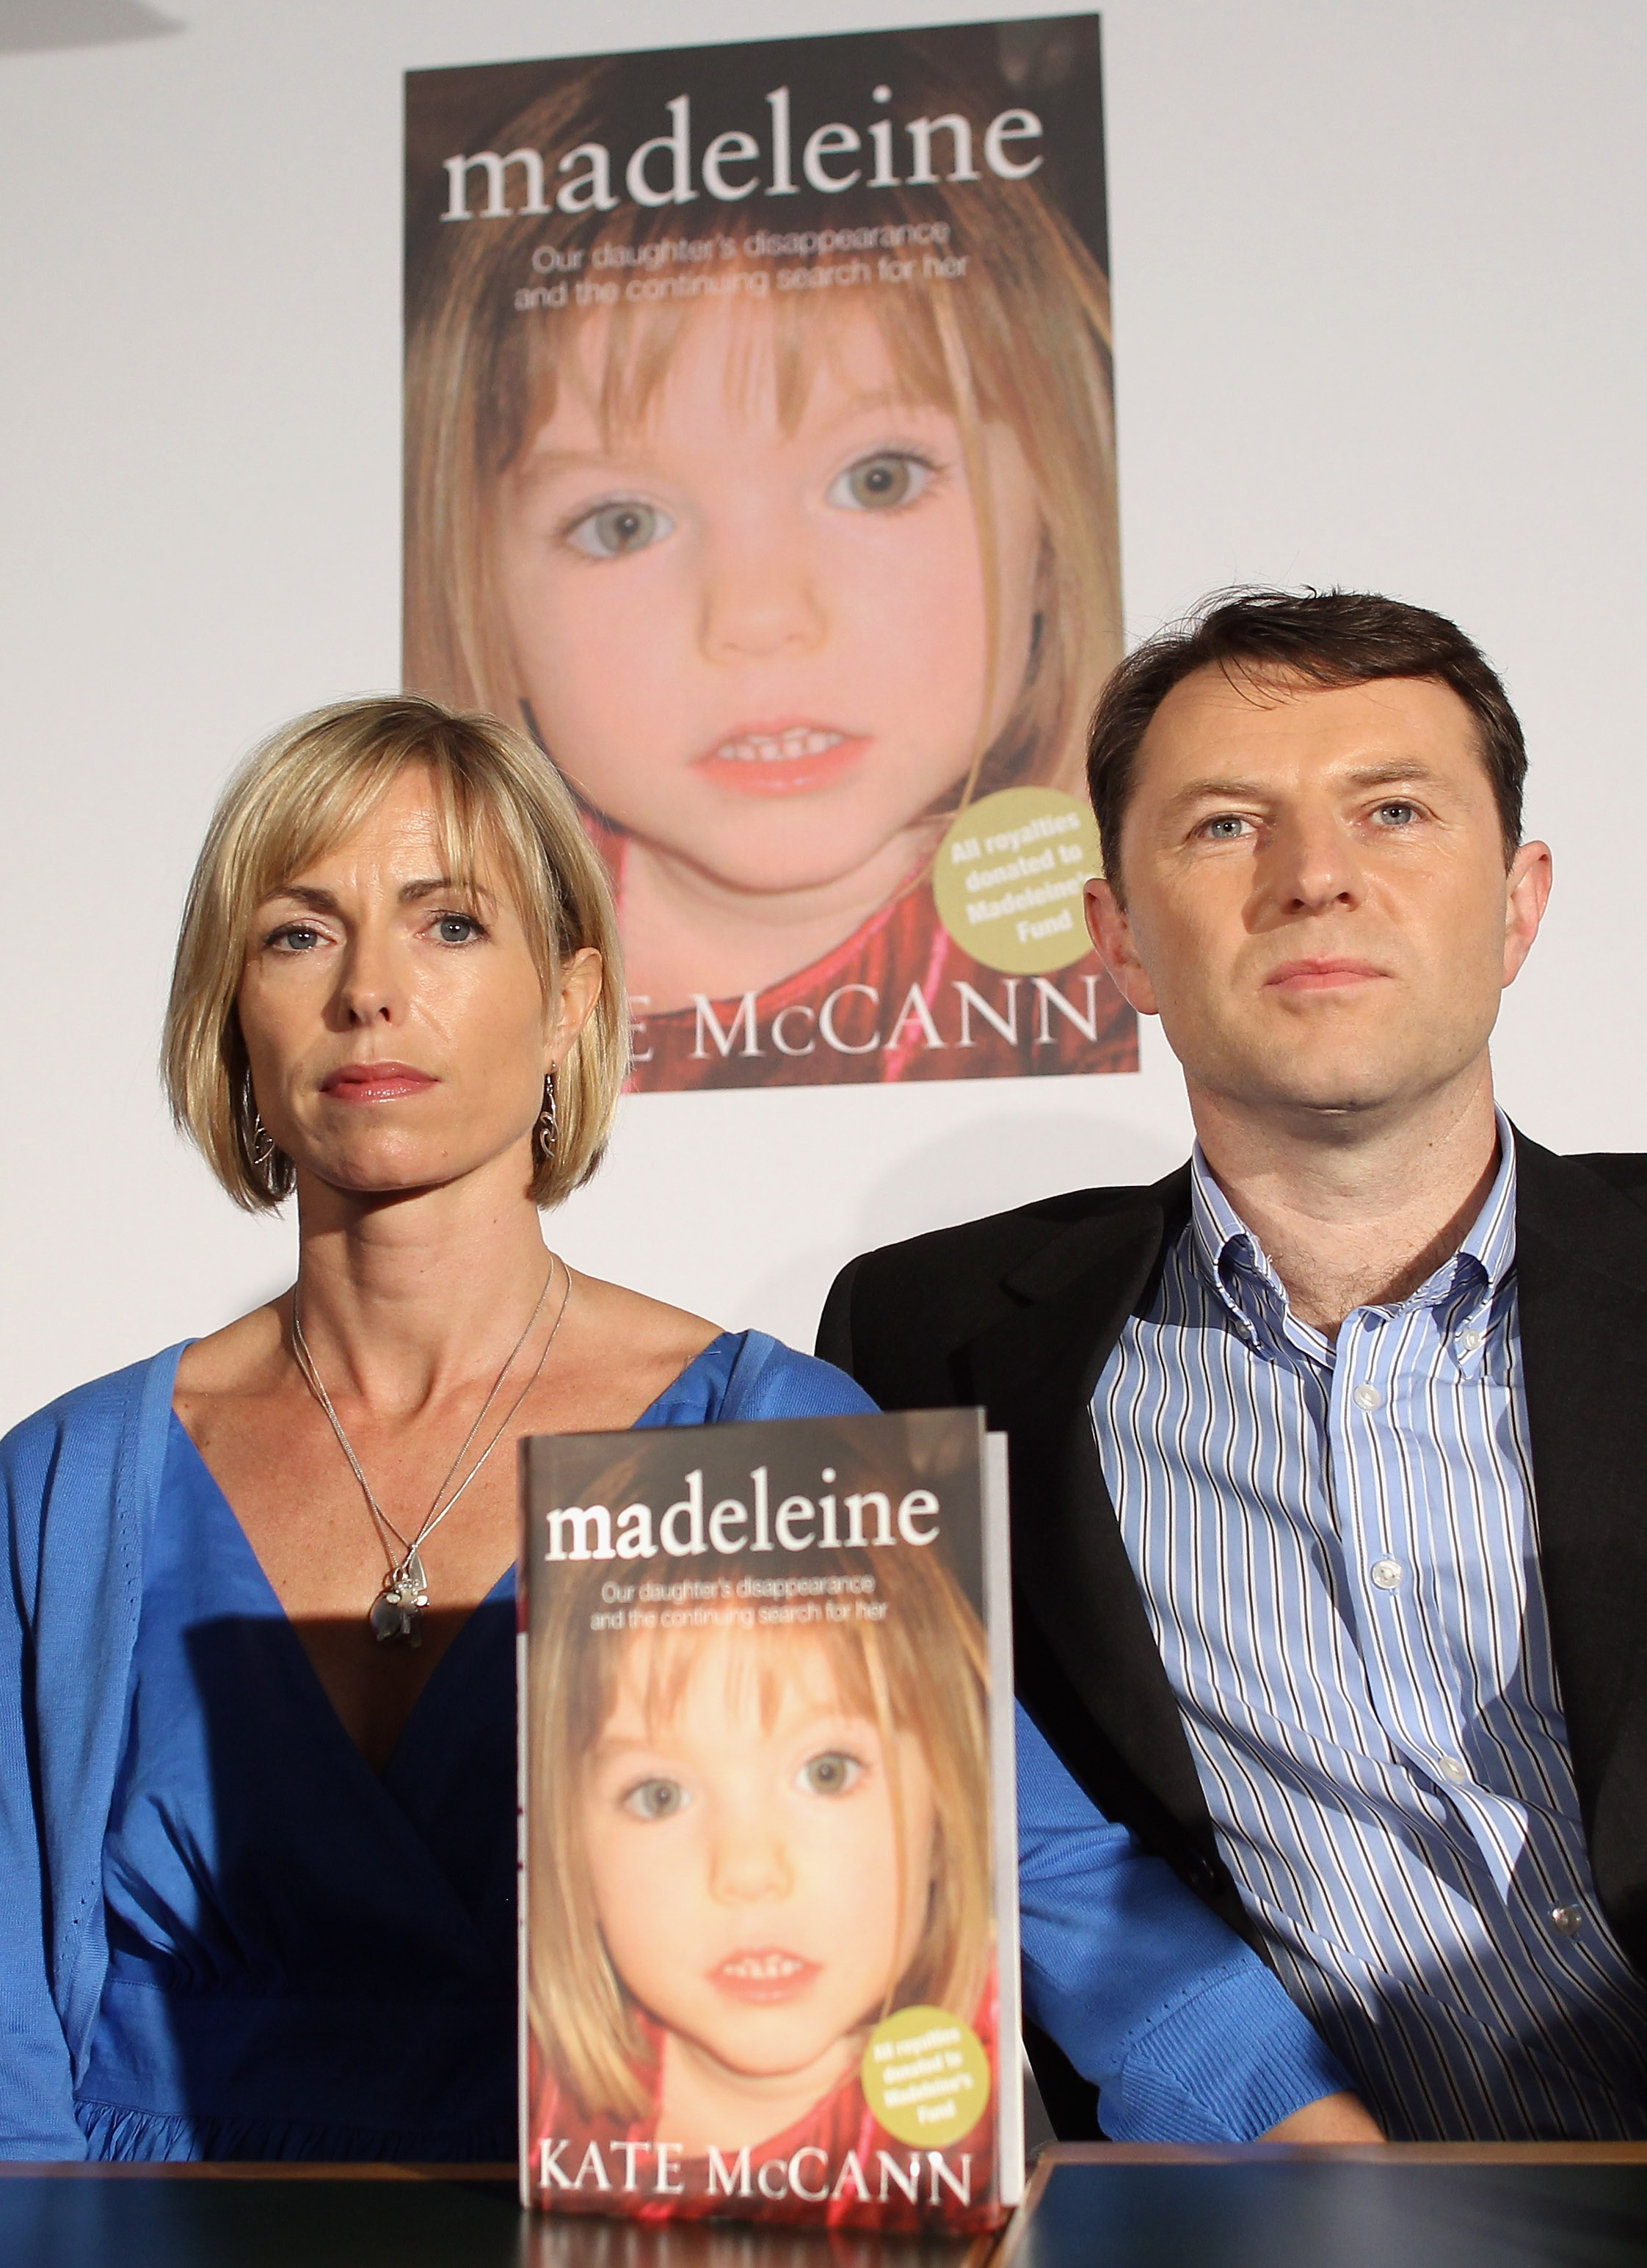 Kate McCann and Gerry McCann launch Kate McCann's new book' 'Madeleine' and answer questions from the press at the Queen Elizabeth II centre on May 12, 2011 in London, England. The book, written by Kate McCann, is a personal account of the disappearance of Madeleine and is hoped to kickstart the investigation into their missing daughter. Three year old Madeleine McCann went missing while on holiday with her parents in the Algarve region of Portugal in May 2007.